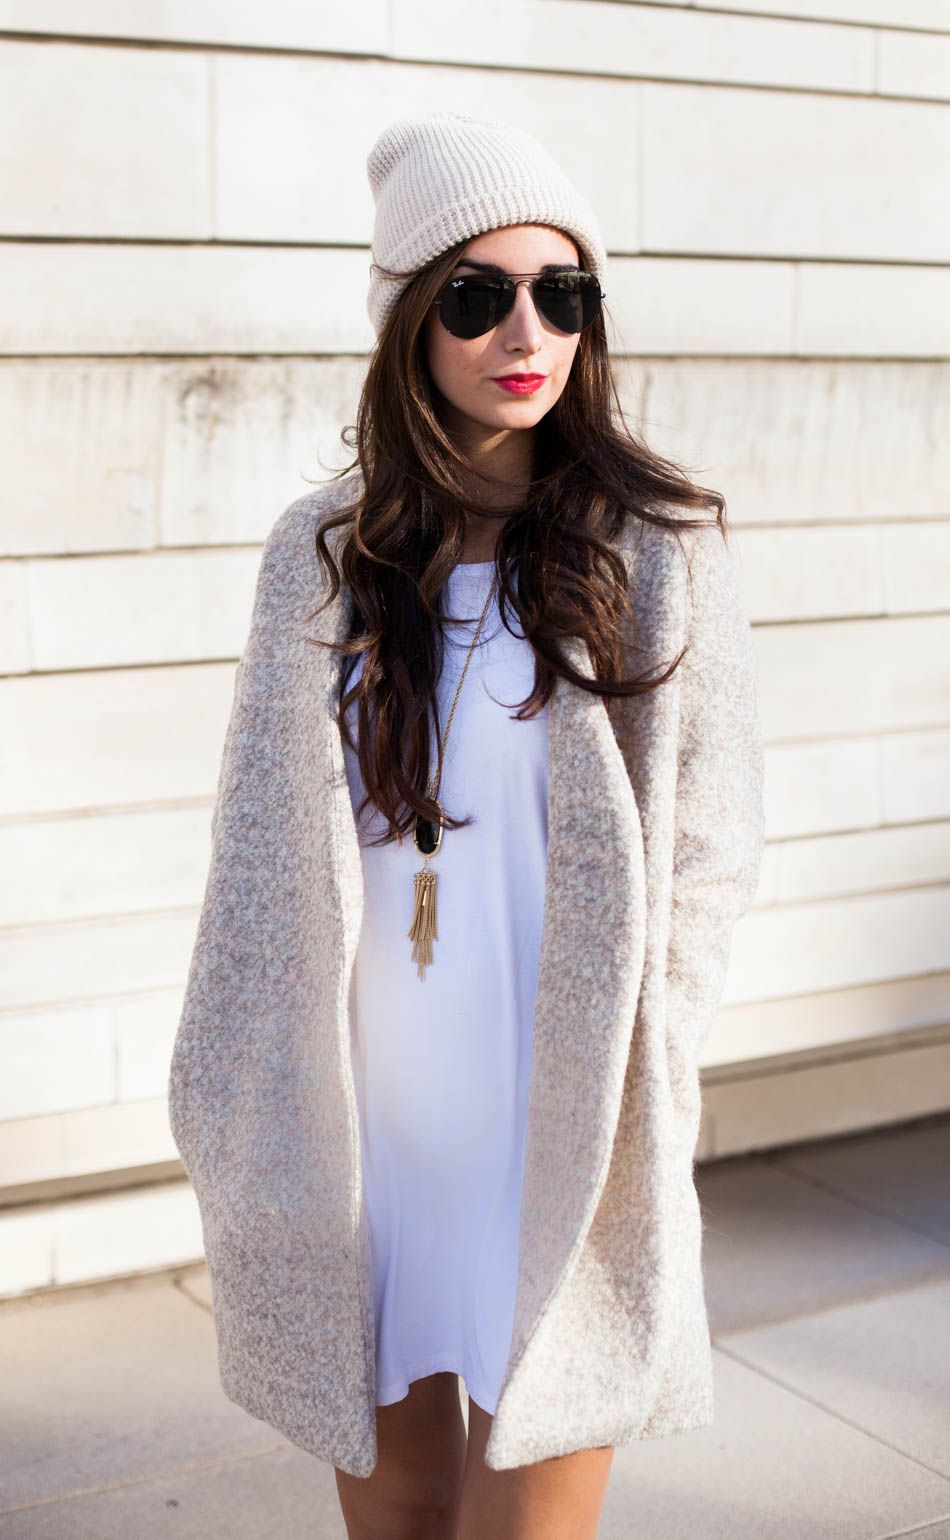 want this sweater. and her hair. Fashion Blogger | The Darling Detail